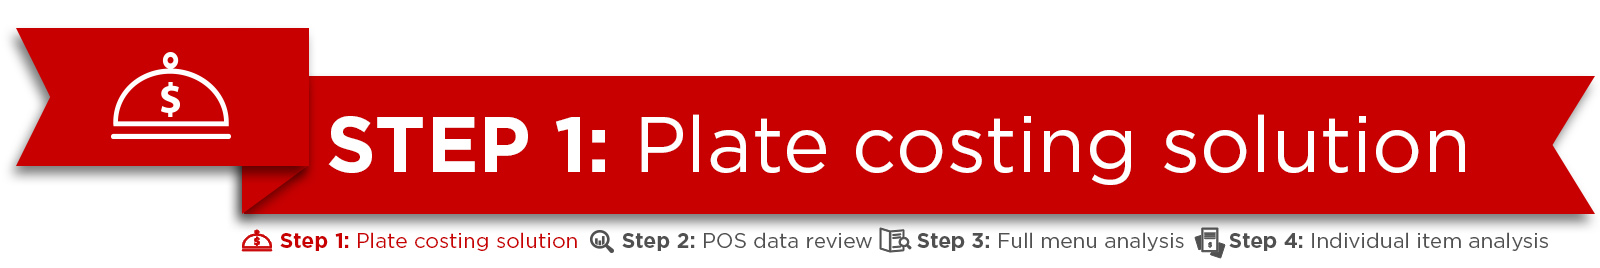 Step 1: Plate costing solution